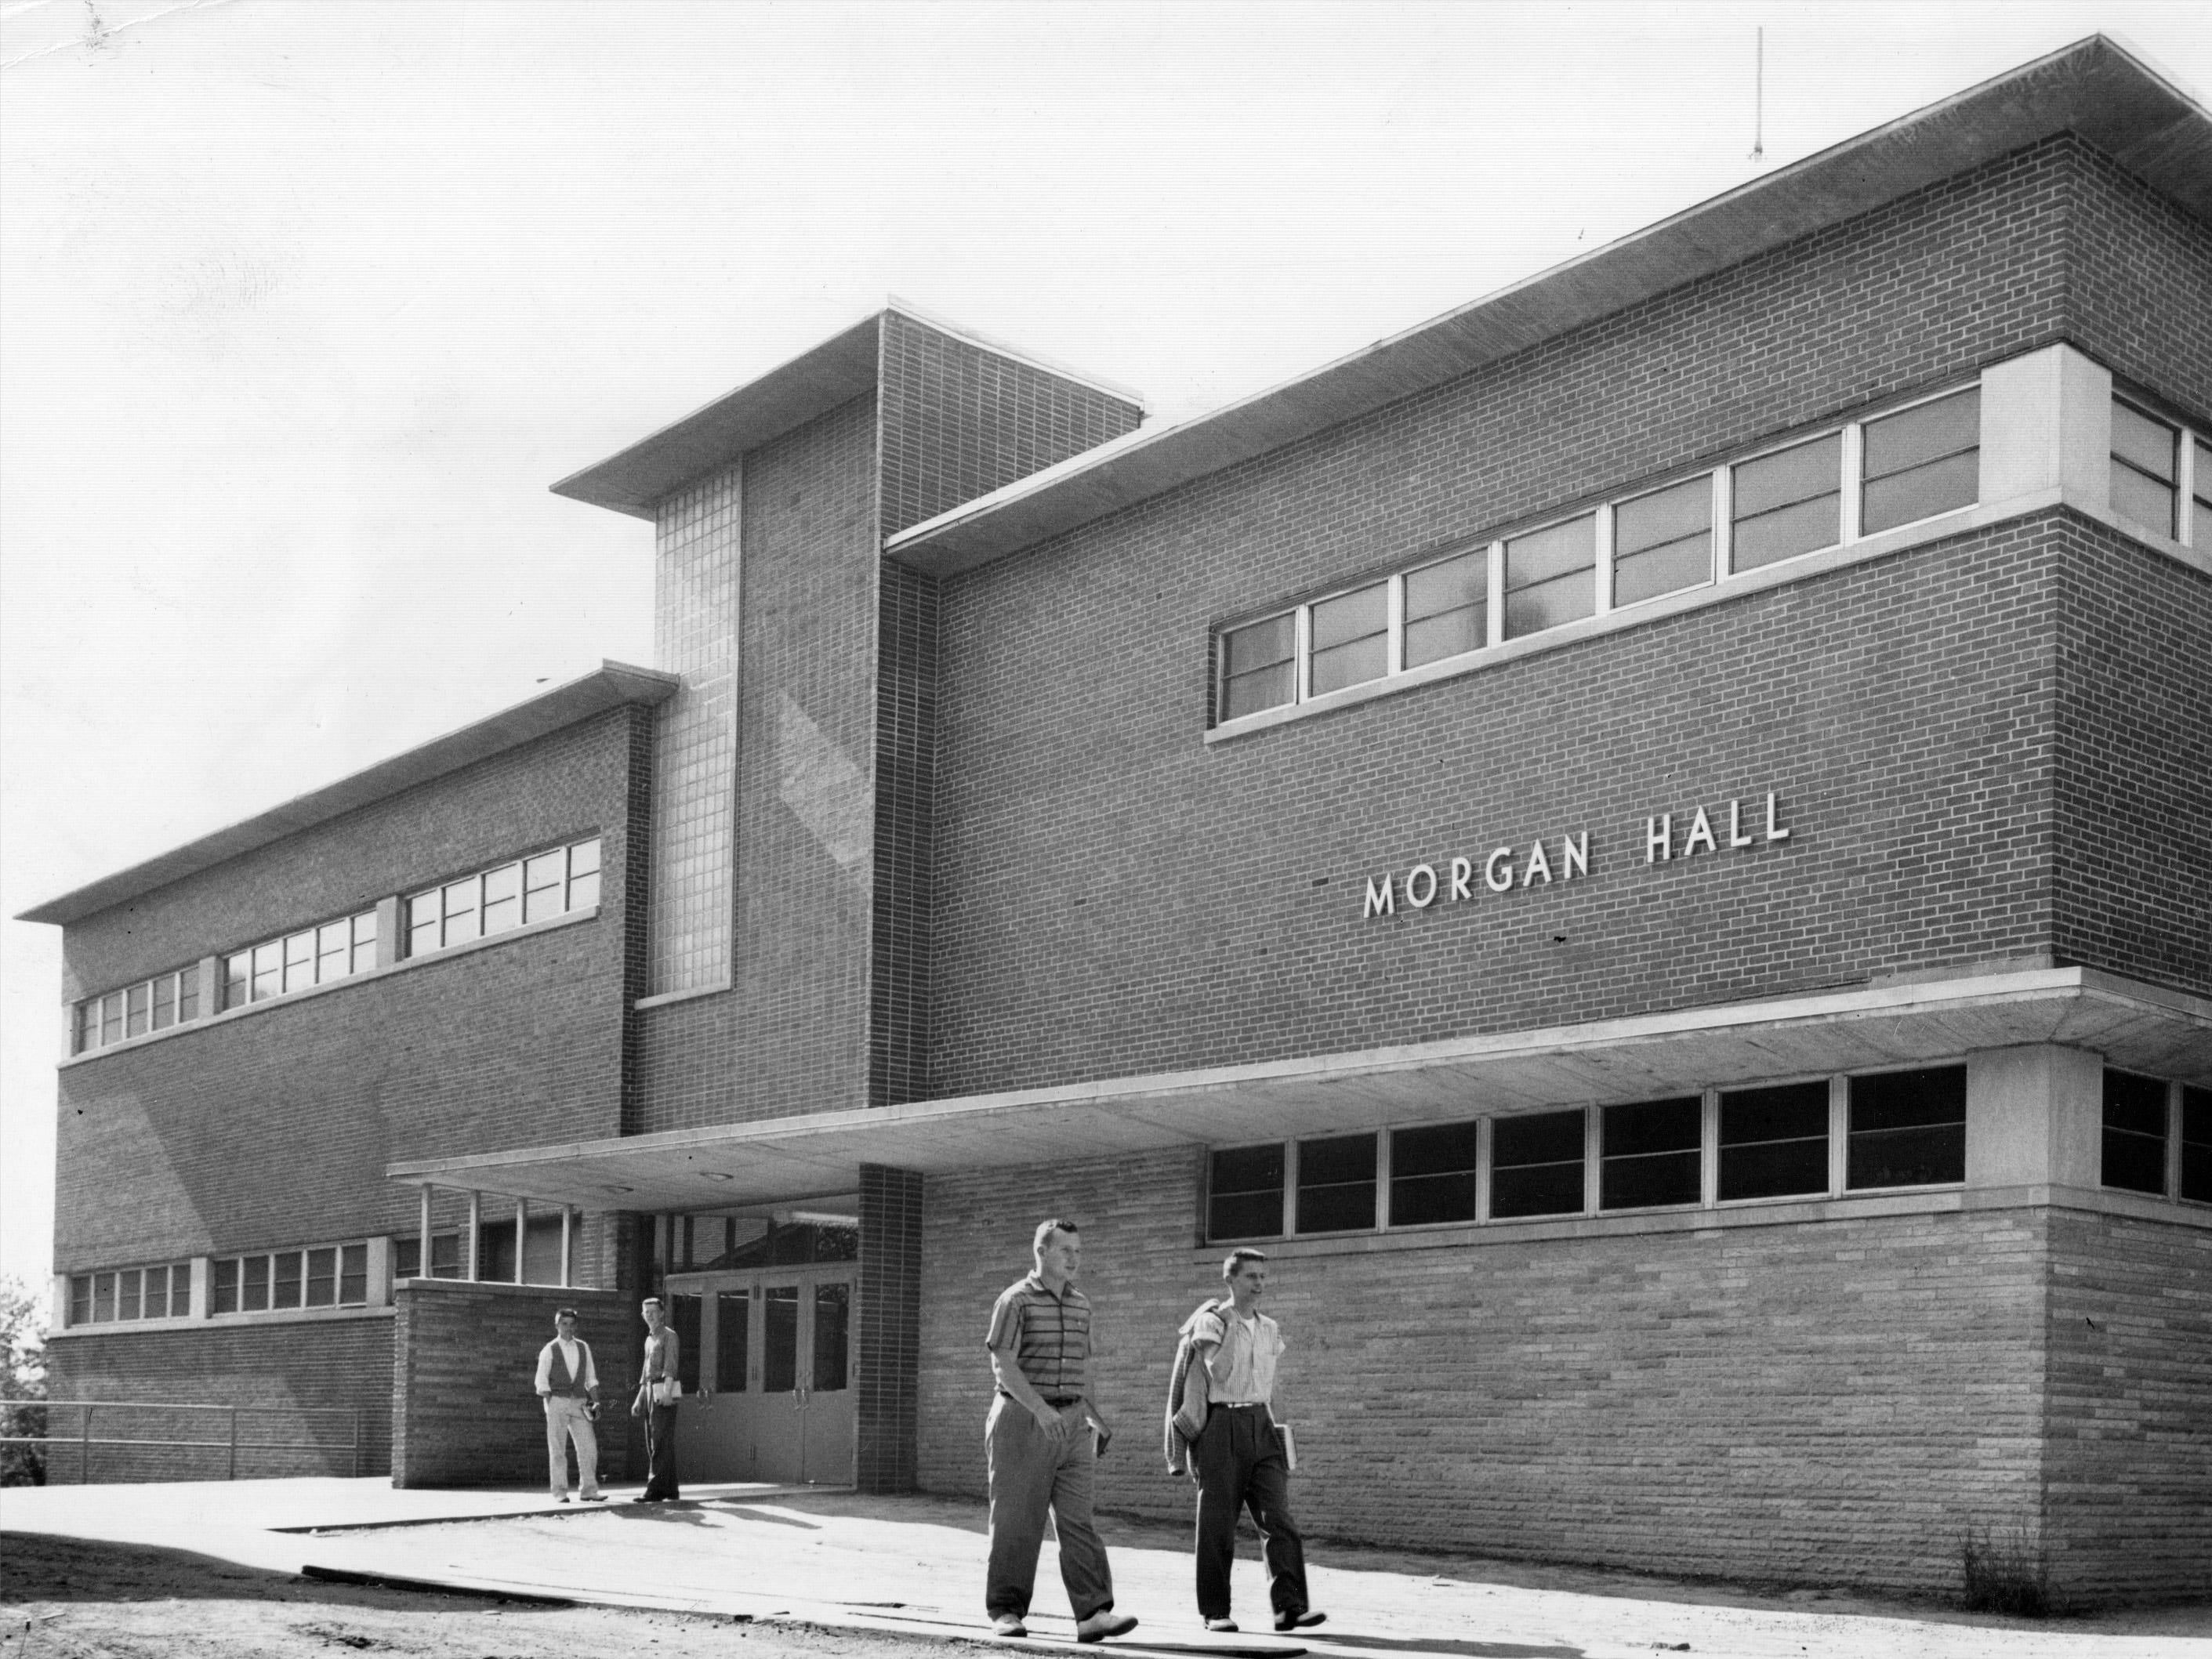 Morgan Hall, named after the late DeWitt Morgan, one-time principal of Arsenal Tech high school and later superintendent of Indianapolis public schools. The building, finished in 1958 was the latest addition to the campus.